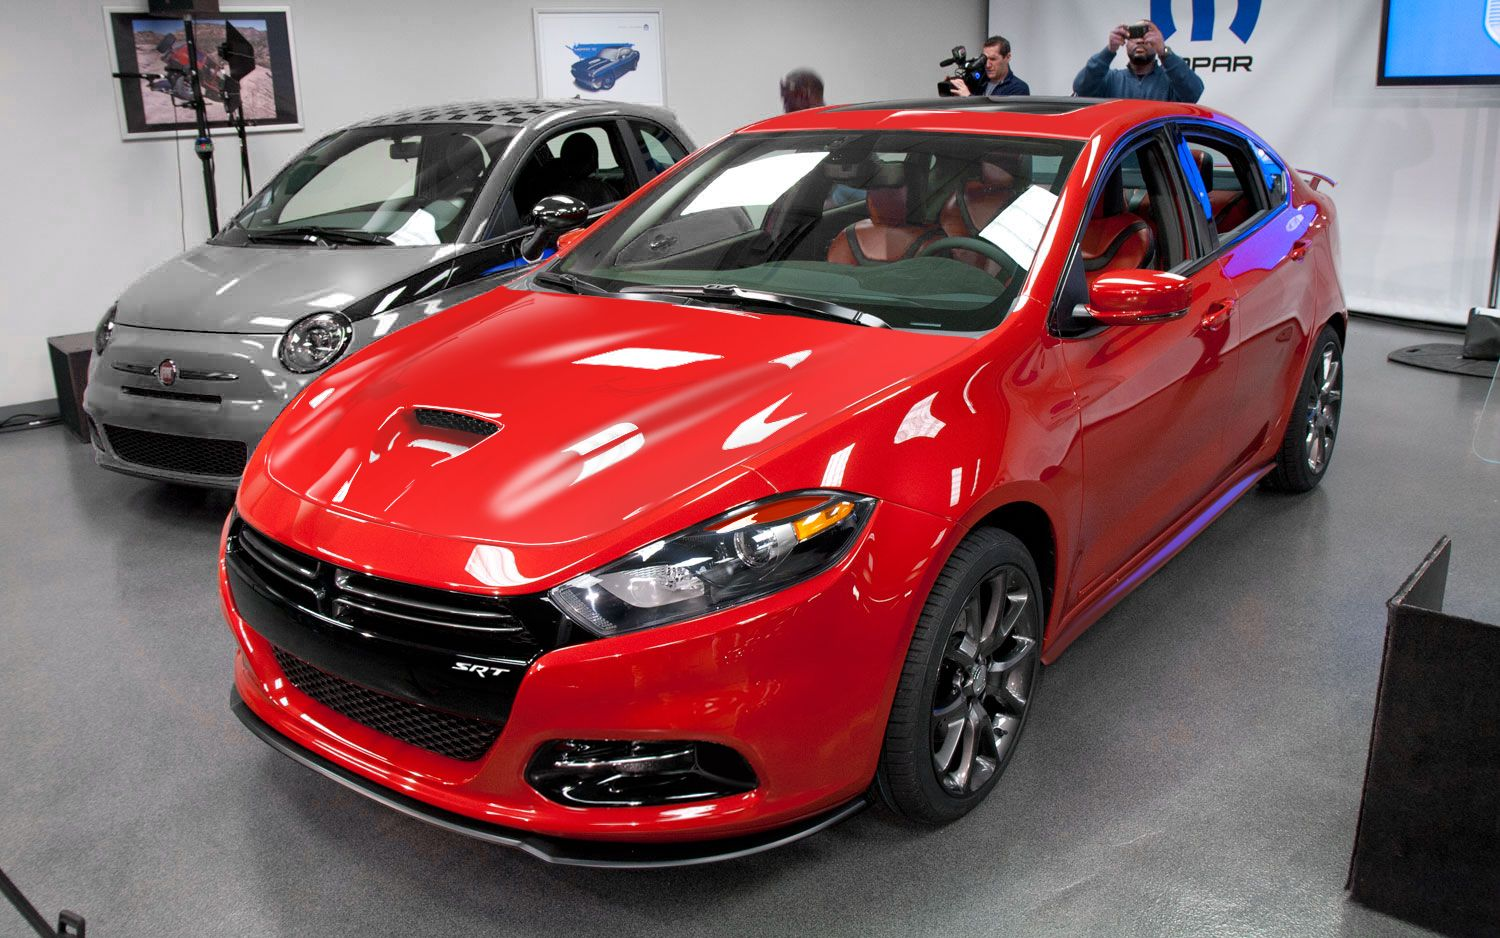 Dodge dart gts bodycolored hood and lip kit with elevated wing and headlight